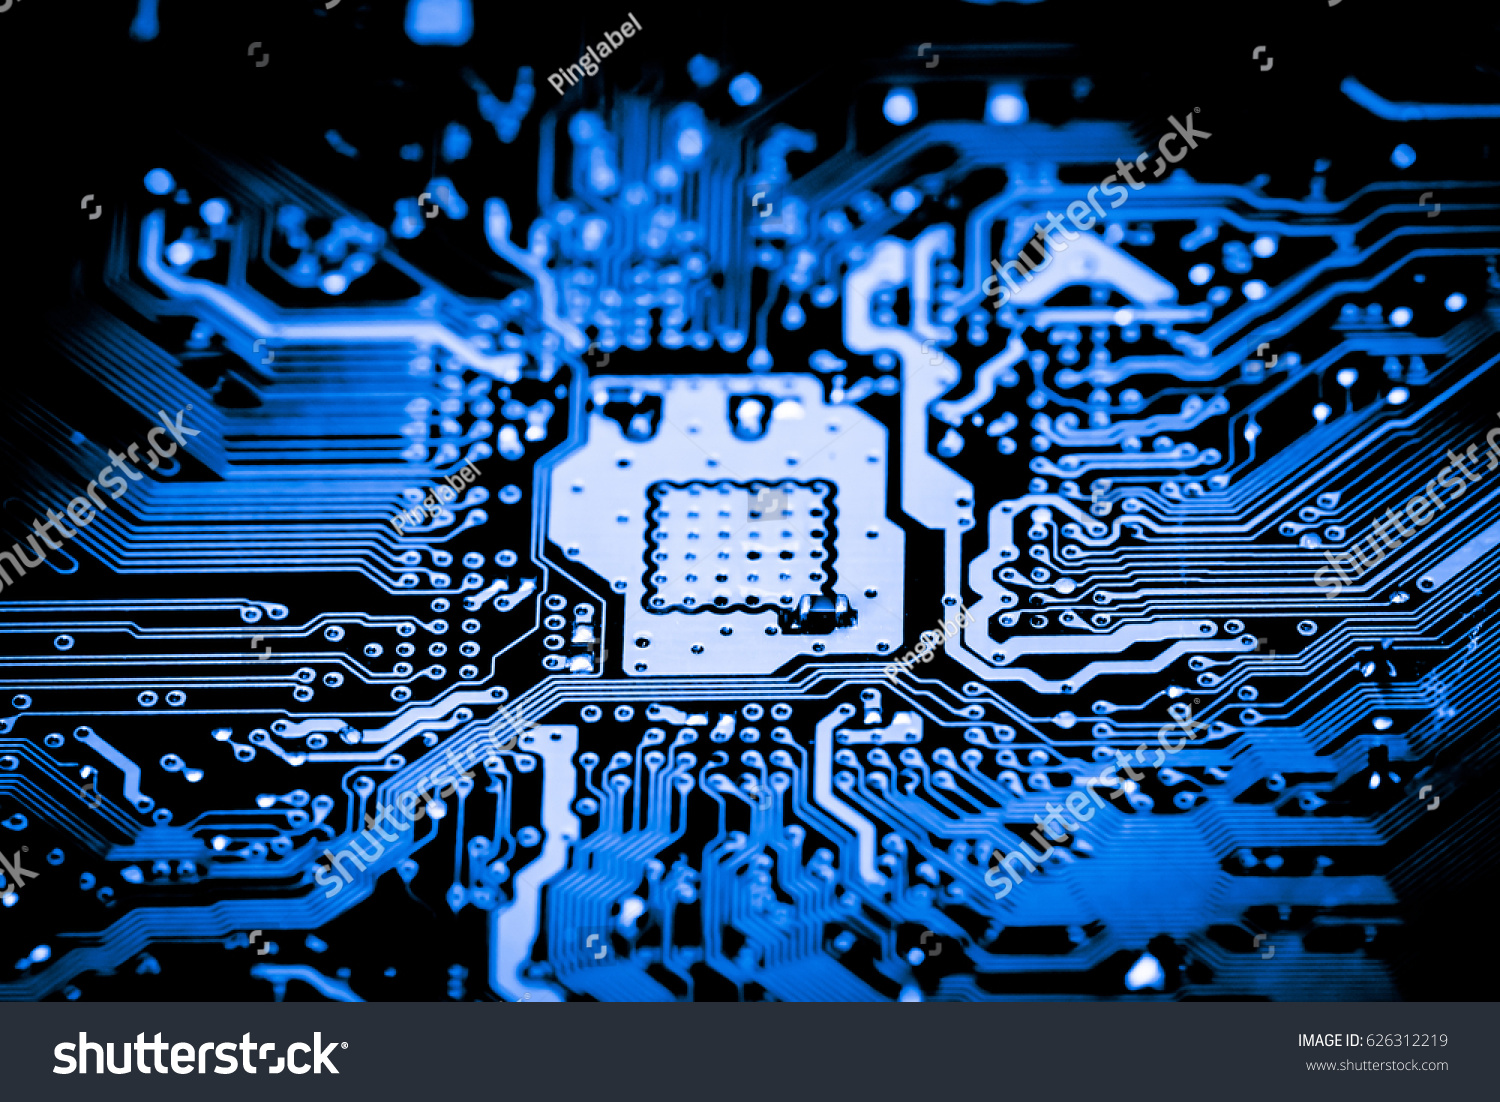 Close Electronic Circuits Technology On Mainboard Stock Photo Edit Circuit And Logic Design Up Of In Background Main Boardcpu Motherboard